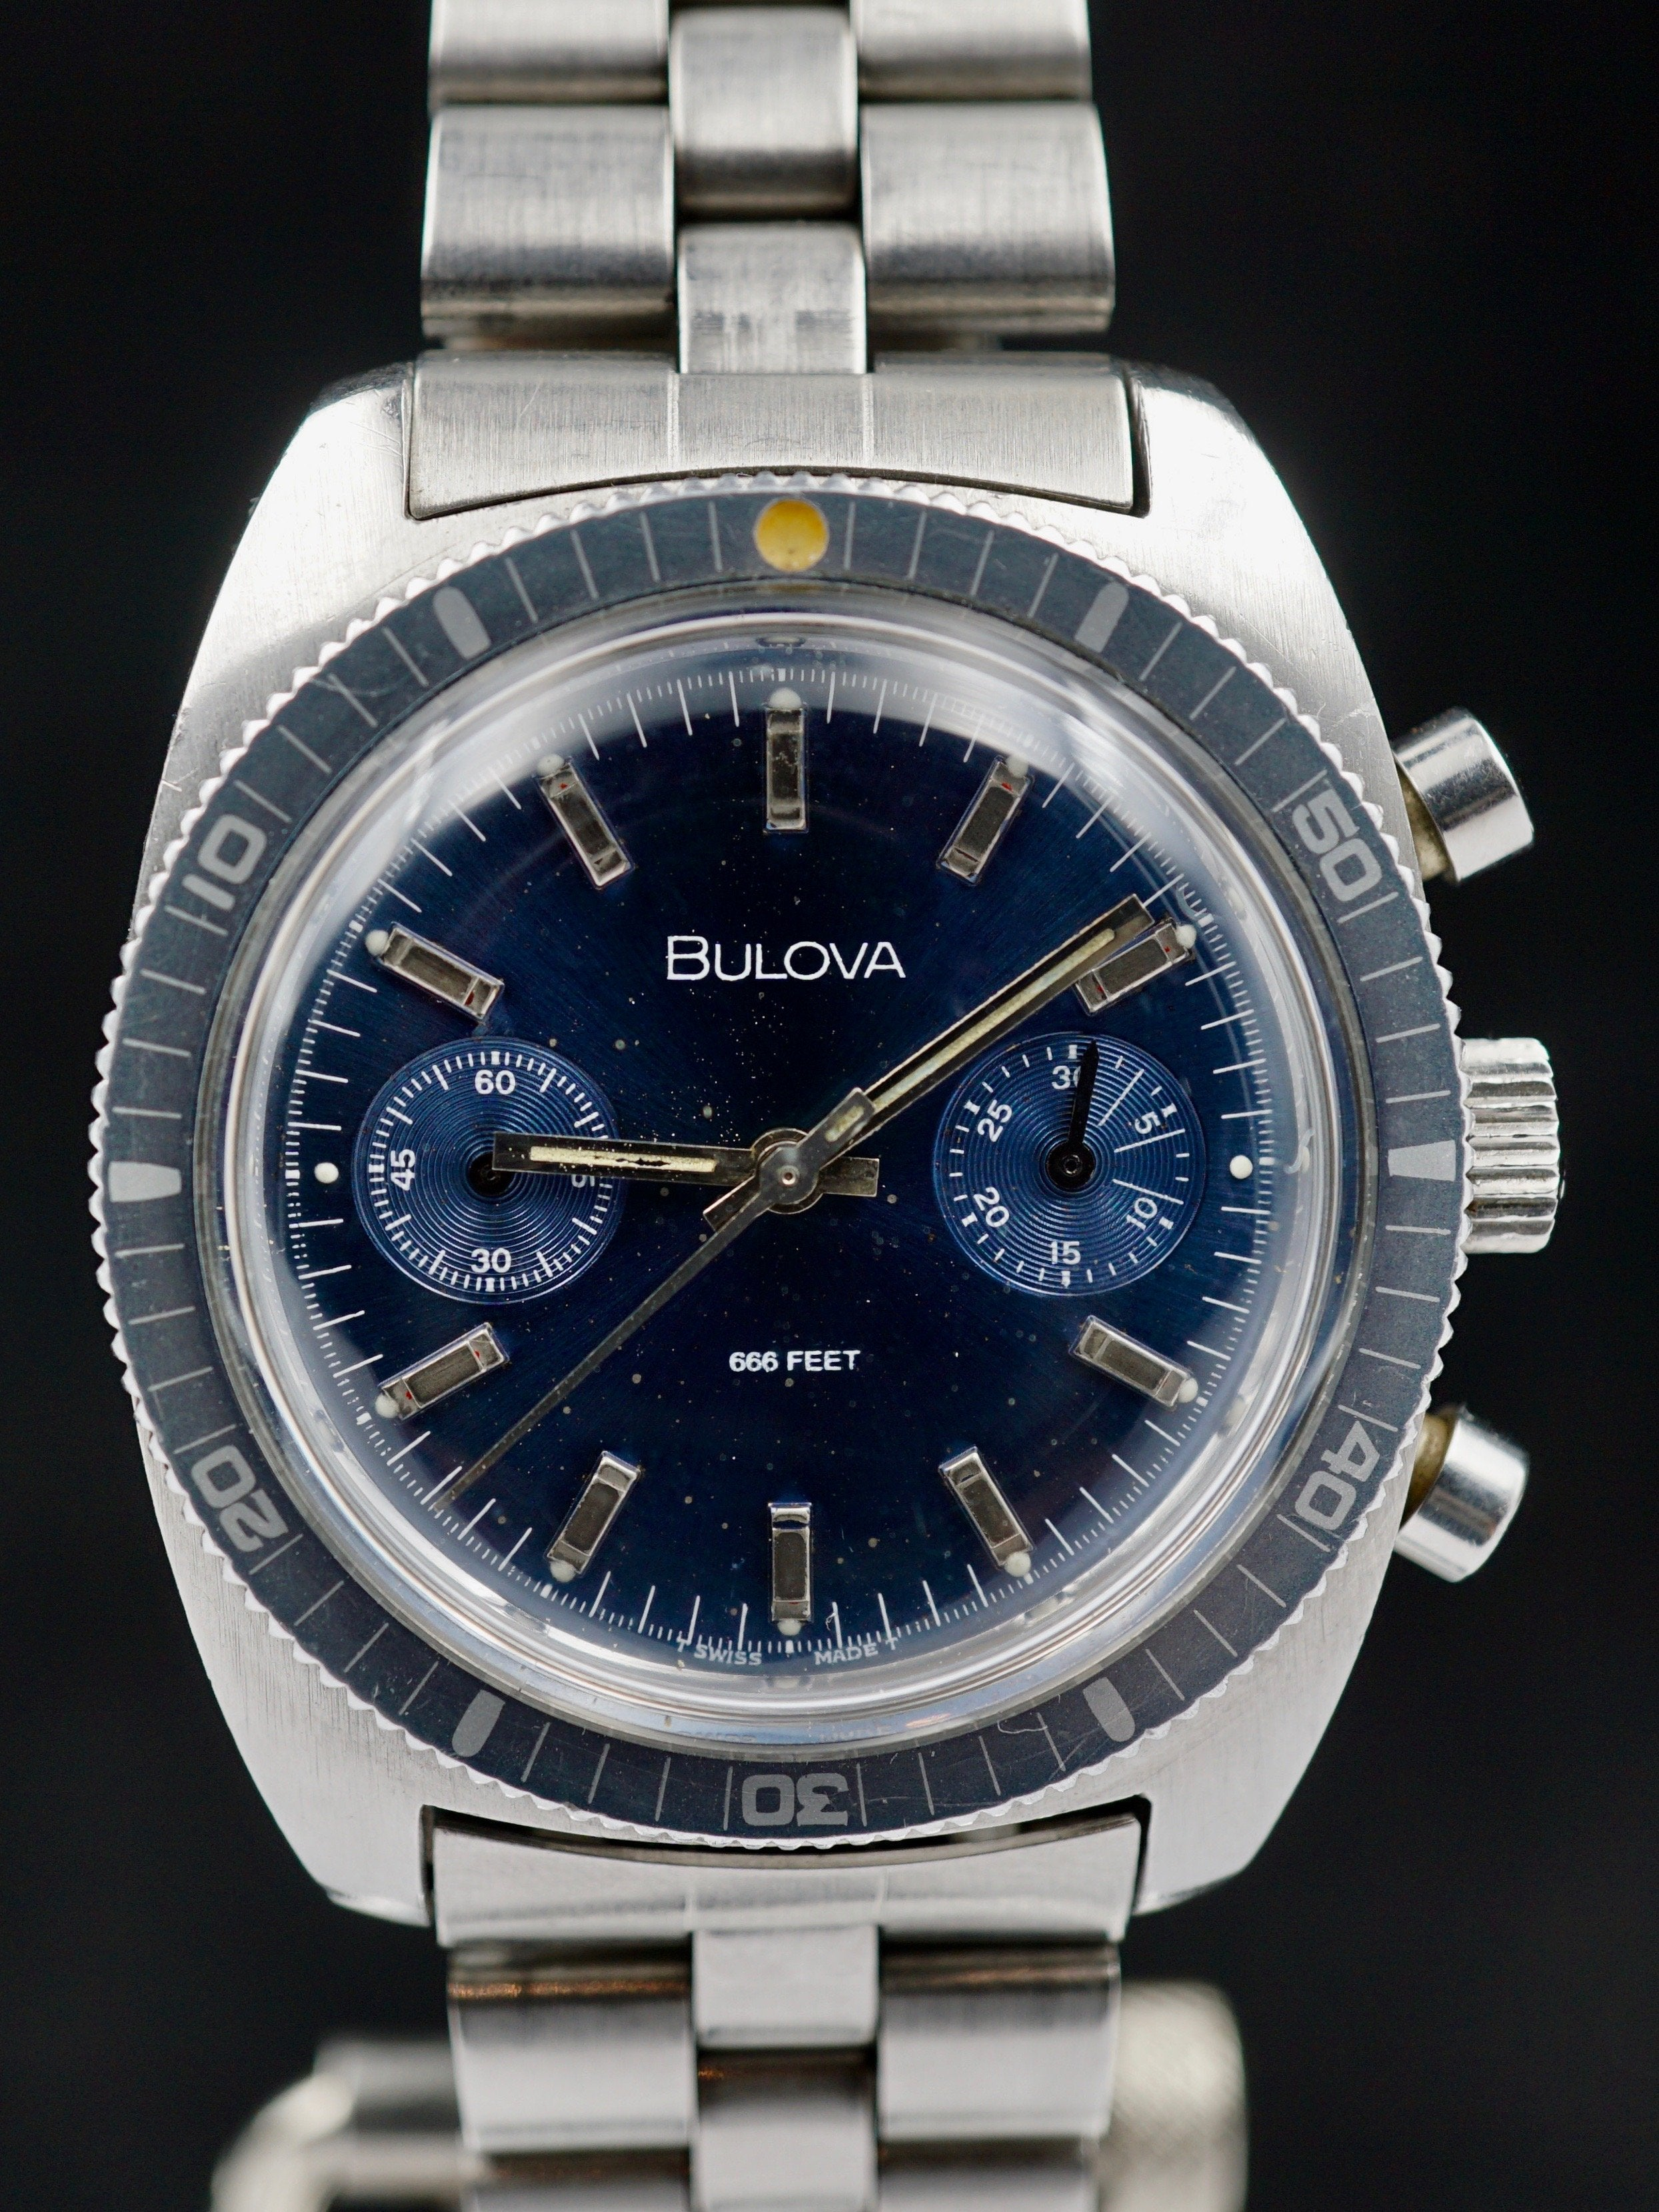 1971 Bulova Deep Sea Divers Chronograph